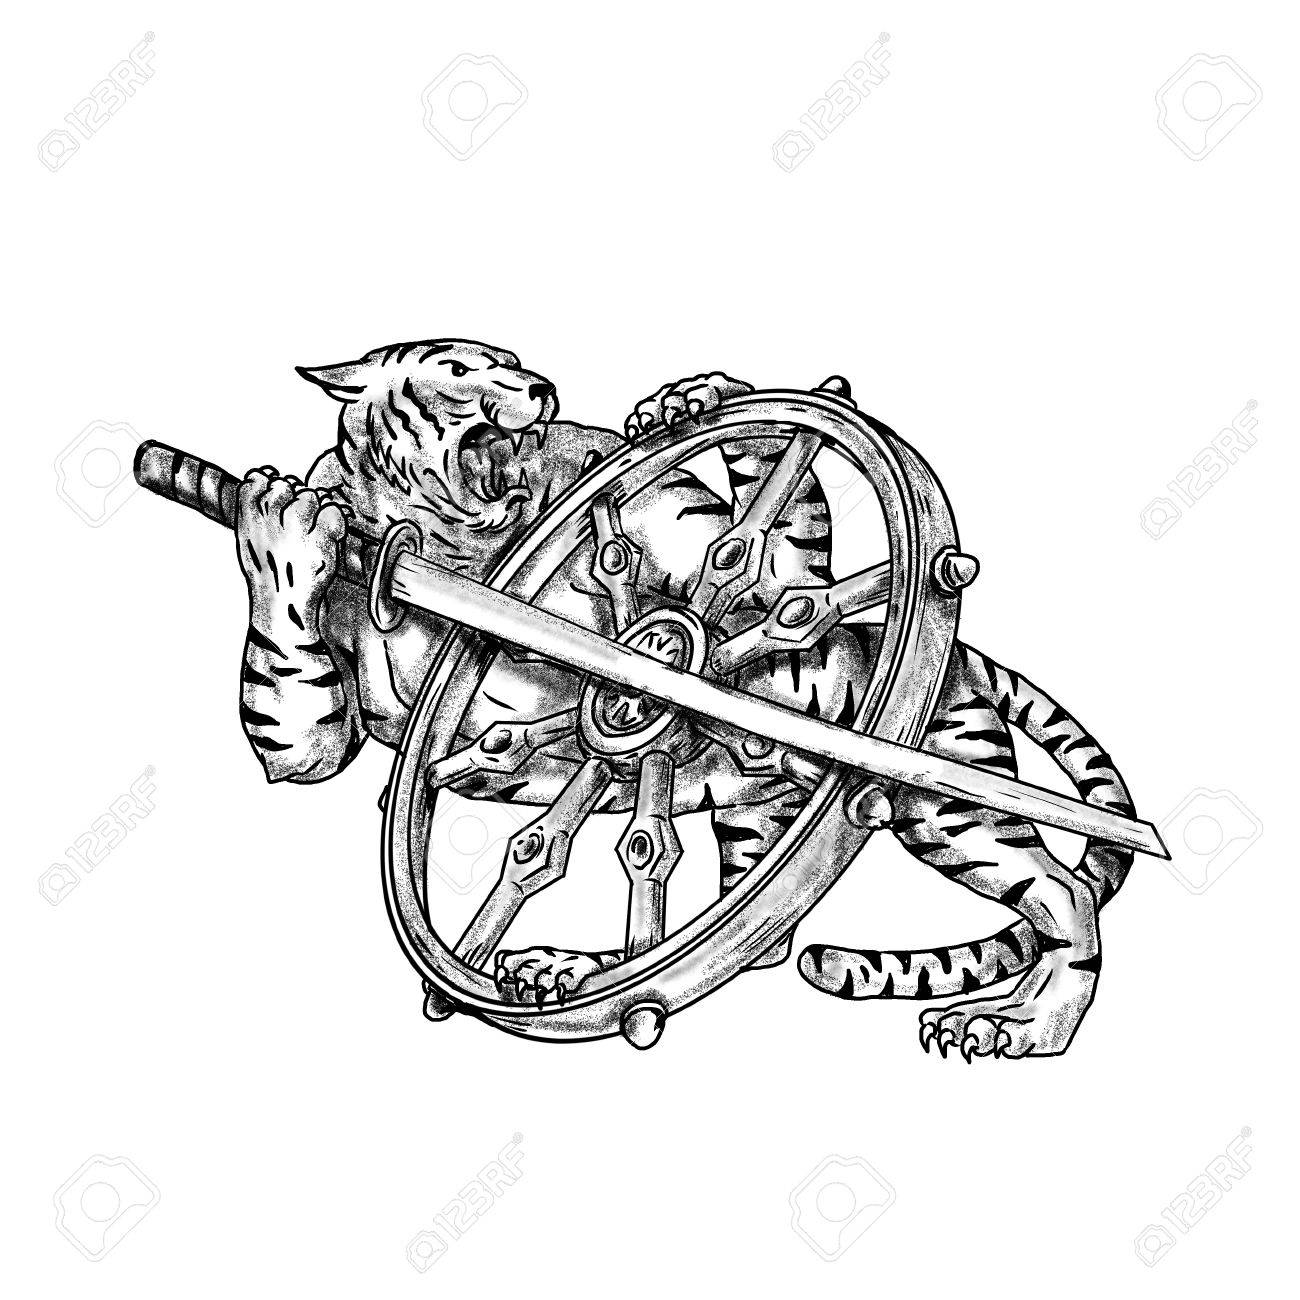 1300x1300 Tattoo Style Illustration Of A Tiger With Katana Samurai Sword